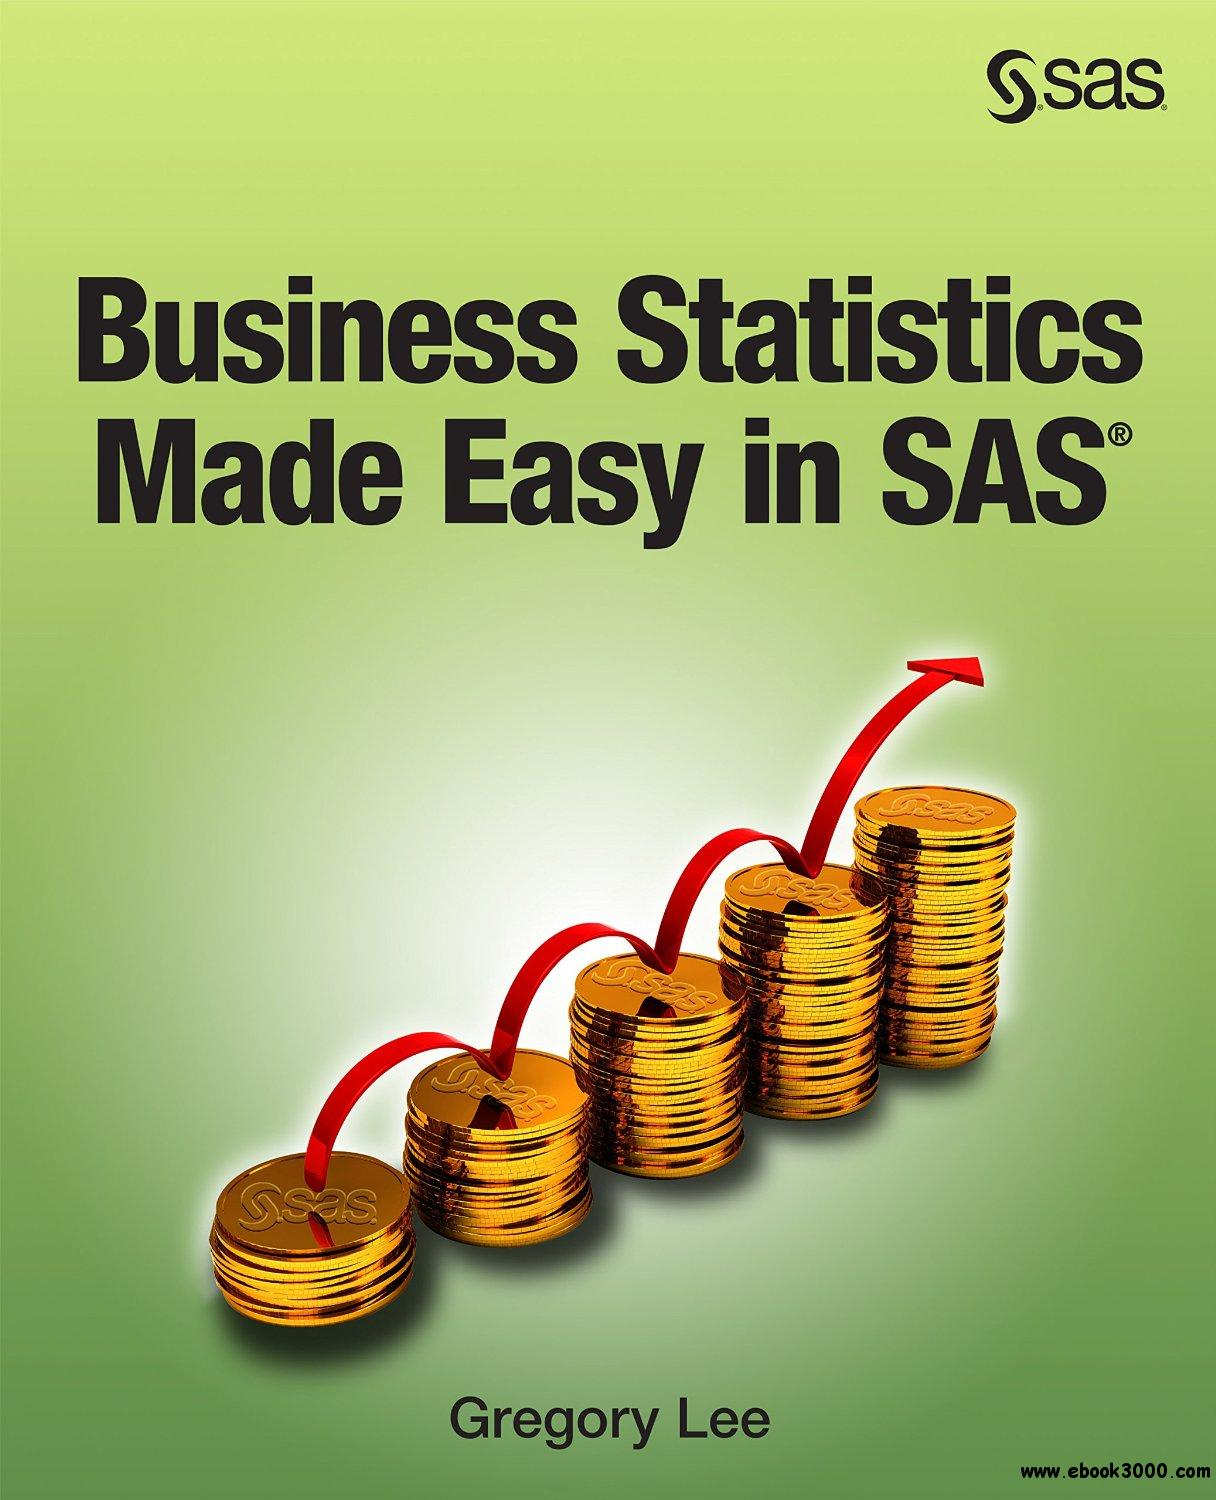 Ebook download free statistics business